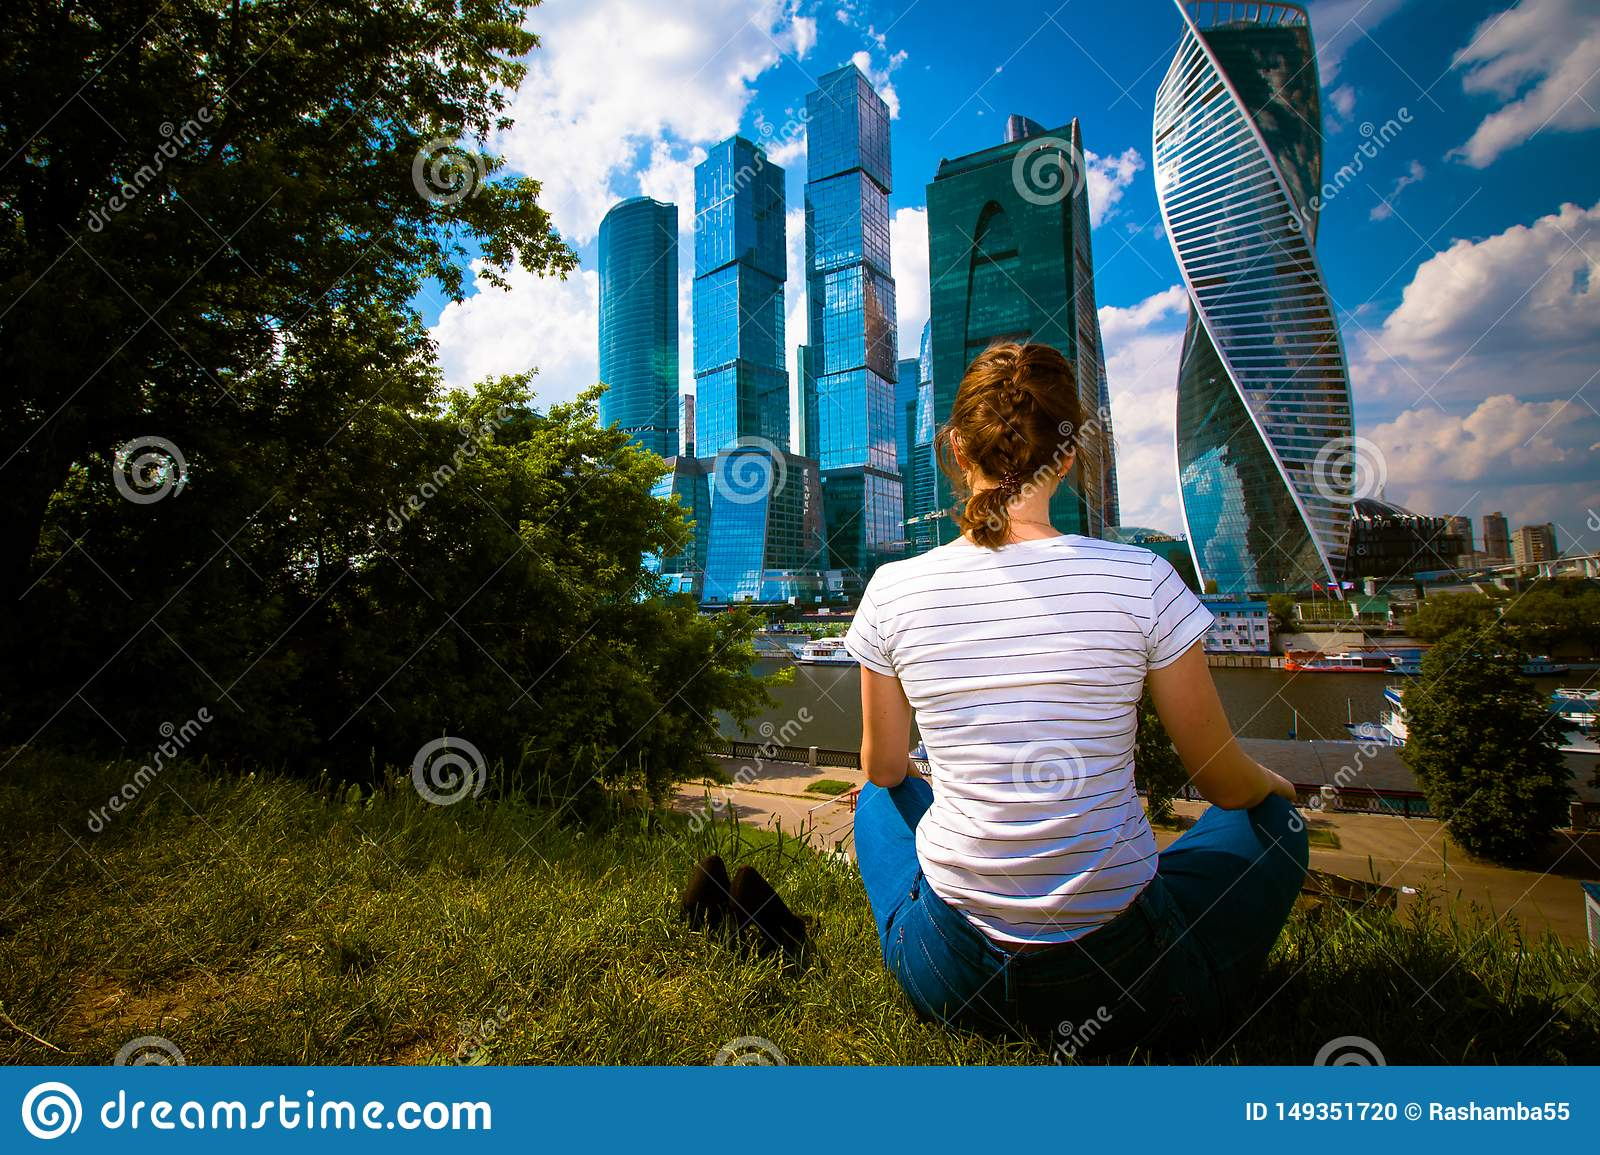 Girl sitting on the grass and relaxing. She is in blue jeans and a white t-shirt. Landscape with skyscrapers